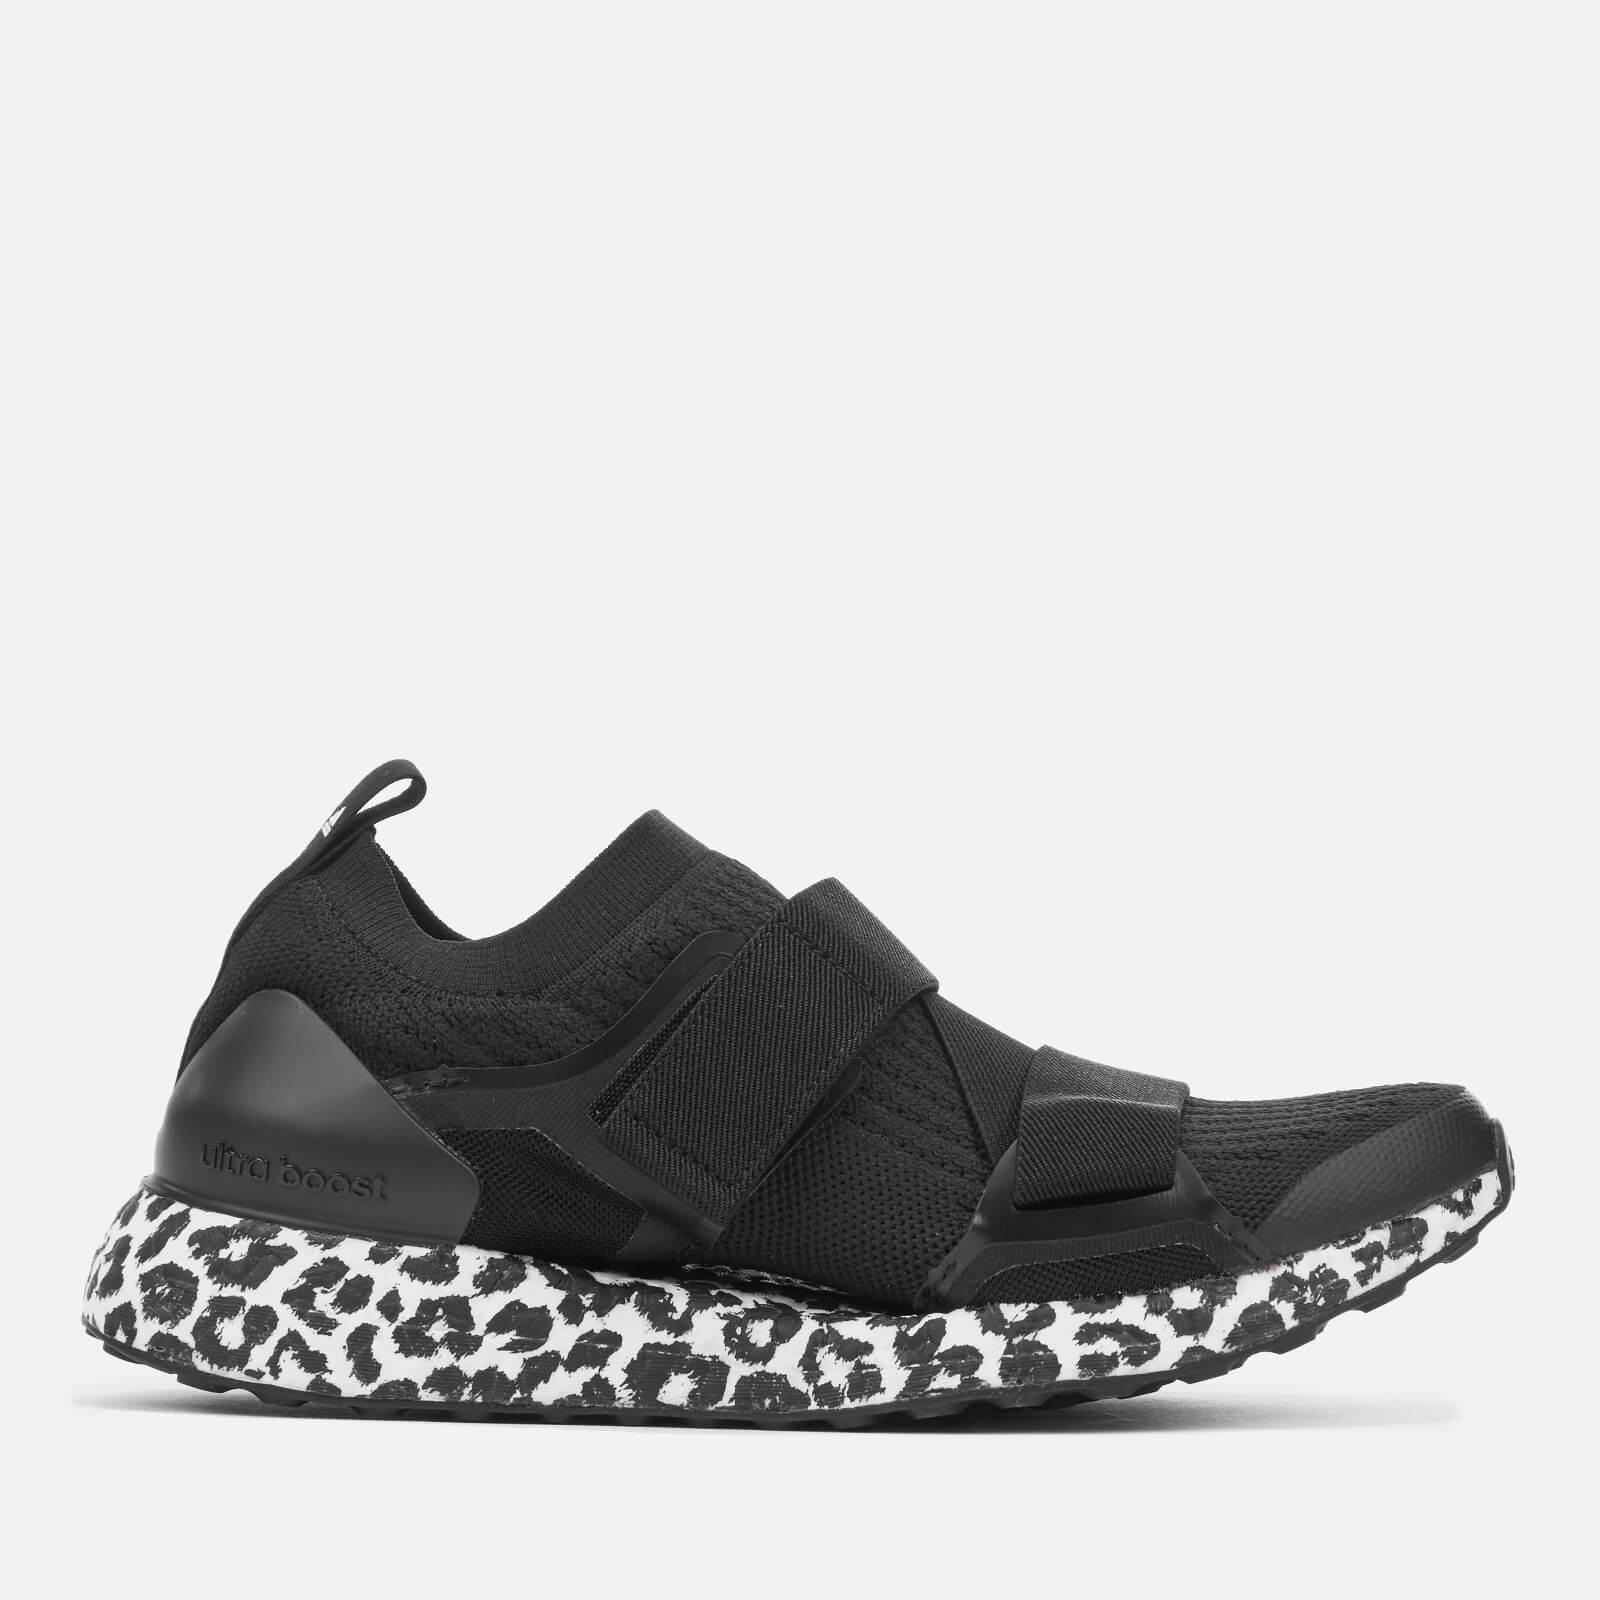 52449535472e1 ... adidas by Stella McCartney Women s Ultraboost X Trainers - Core  Black White